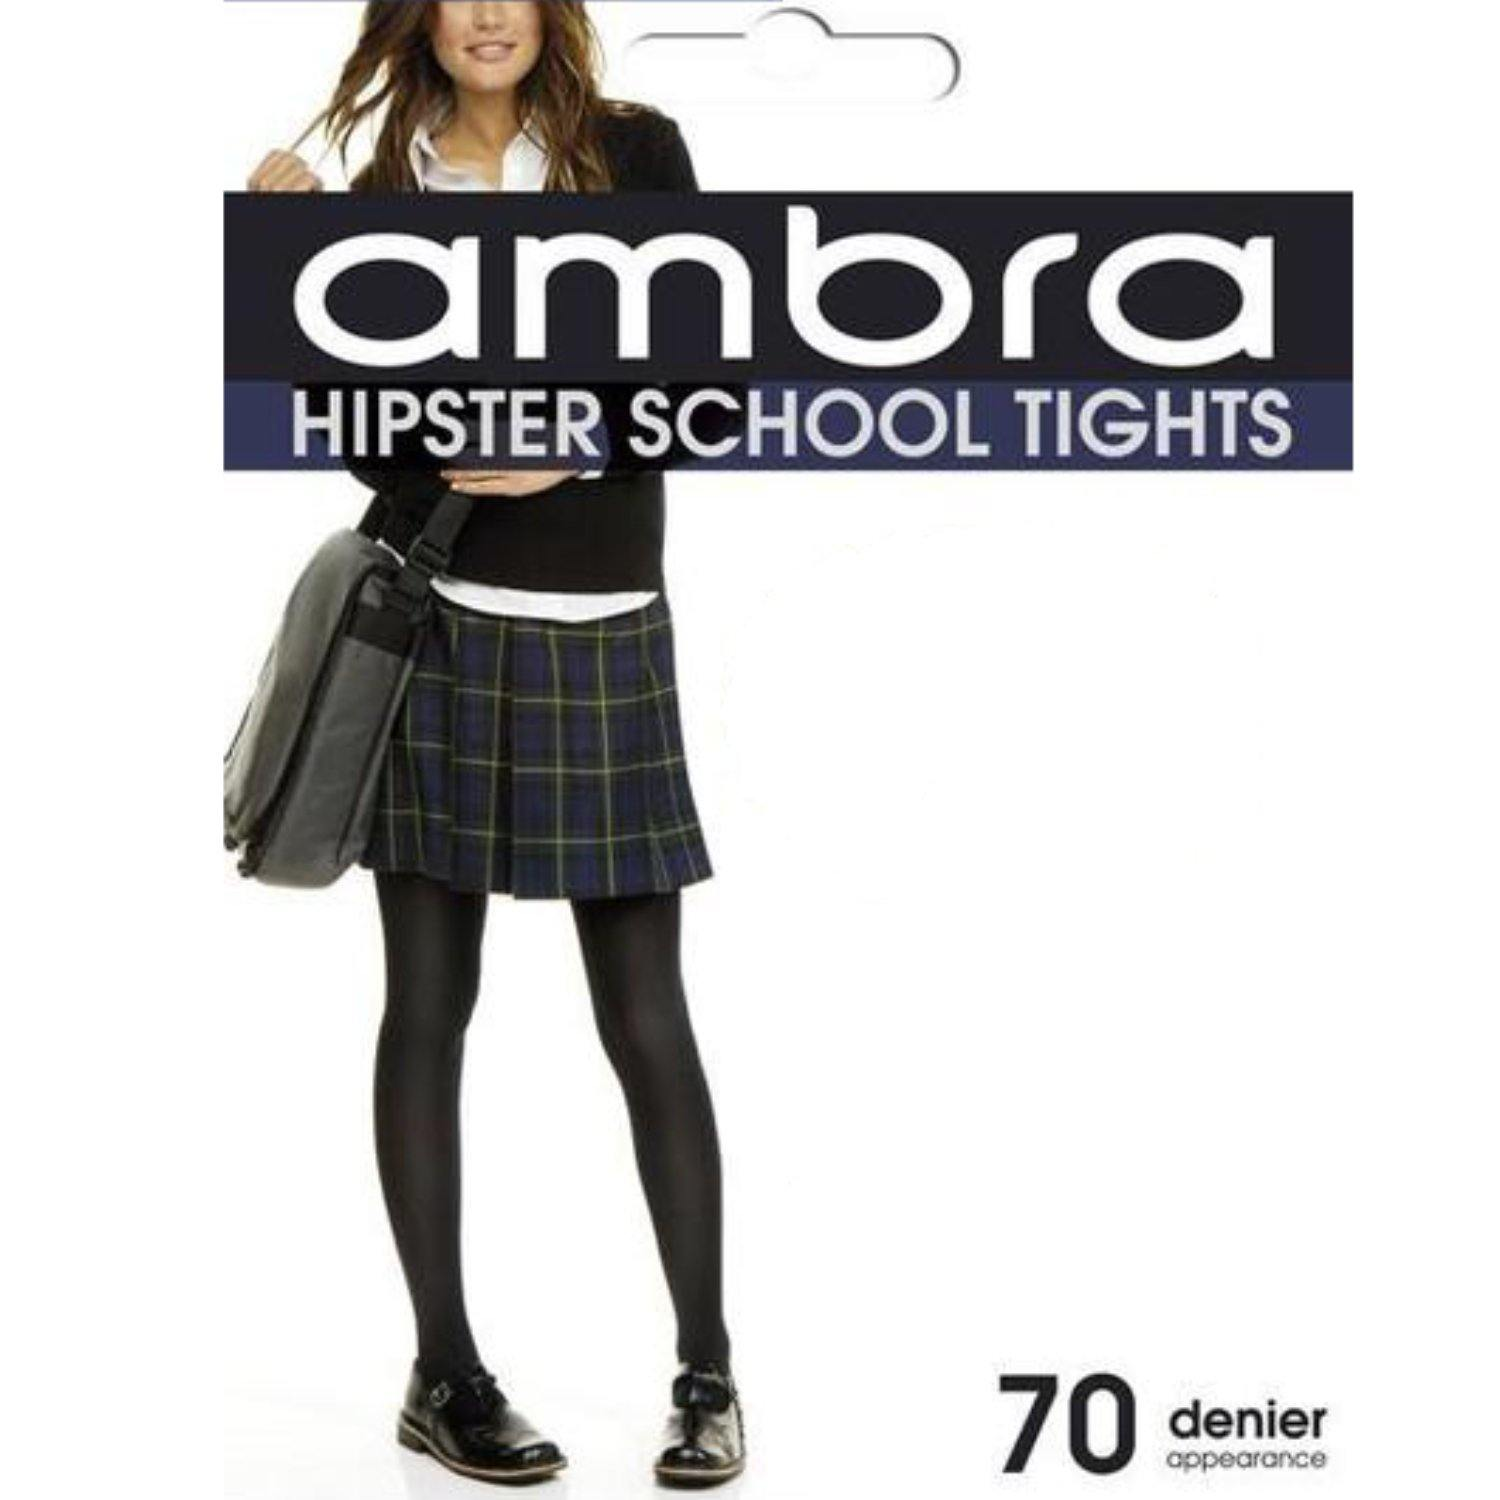 Ambra Hipster School Tights - 70 Denier